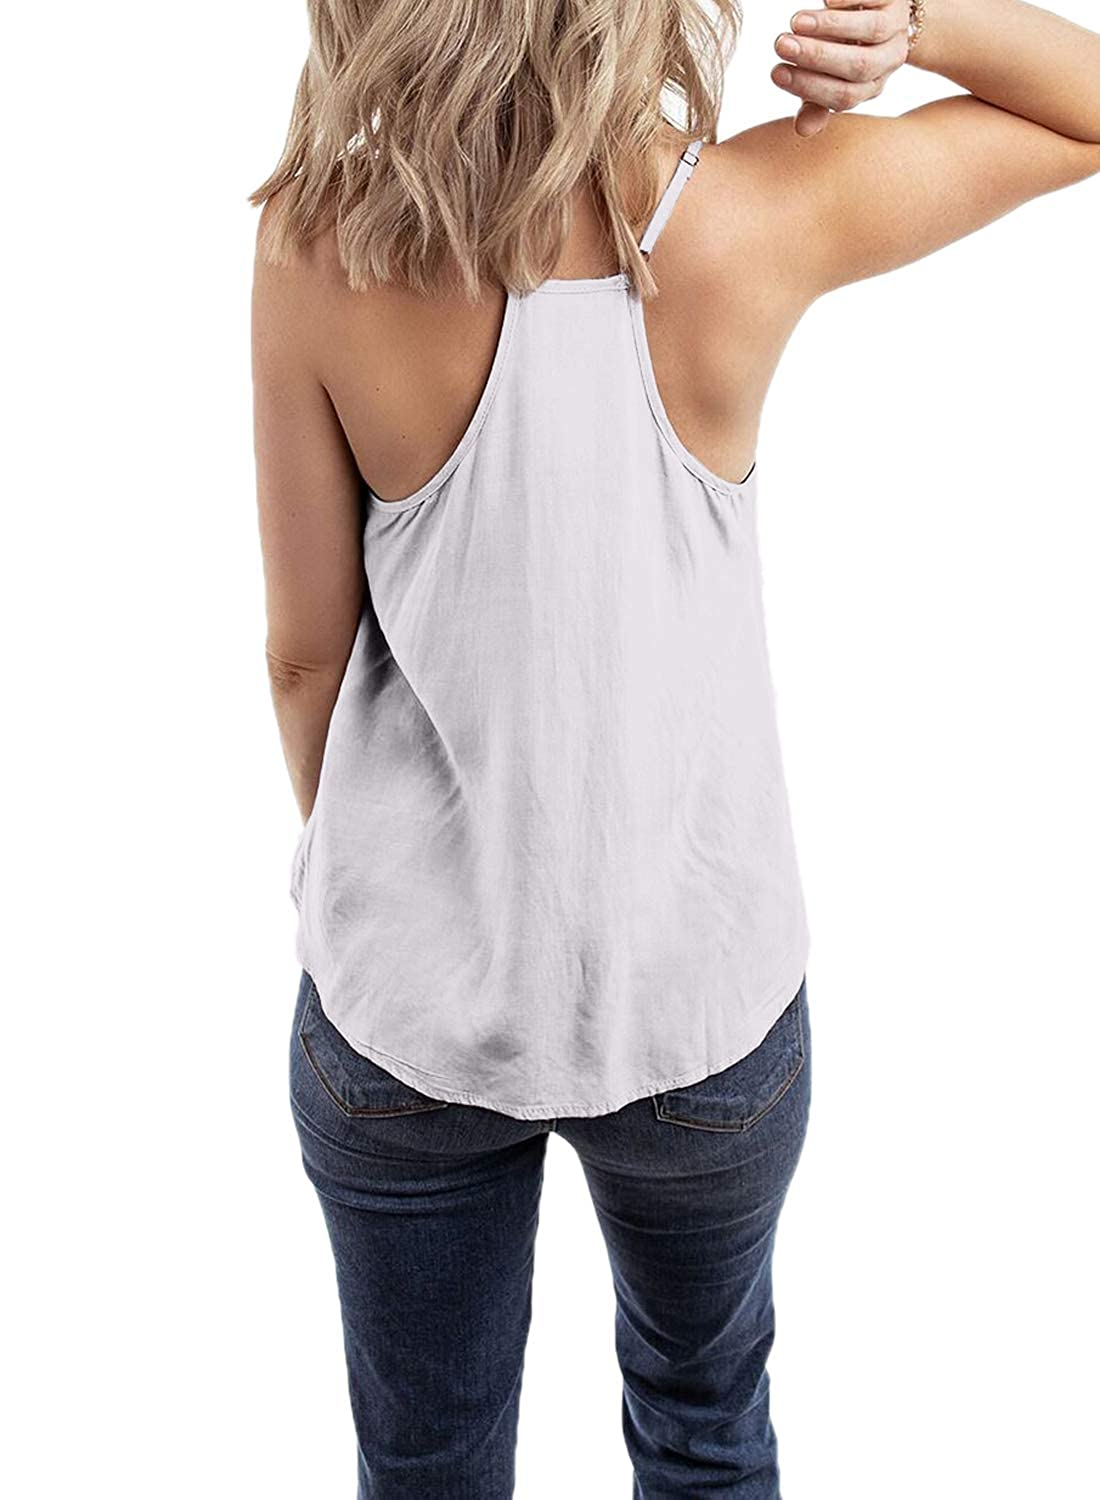 Asvivid Womens Summer Embroidered Sleeveless Cami Shirt Strappy V Neck Tank Tops Blouse S-2XL